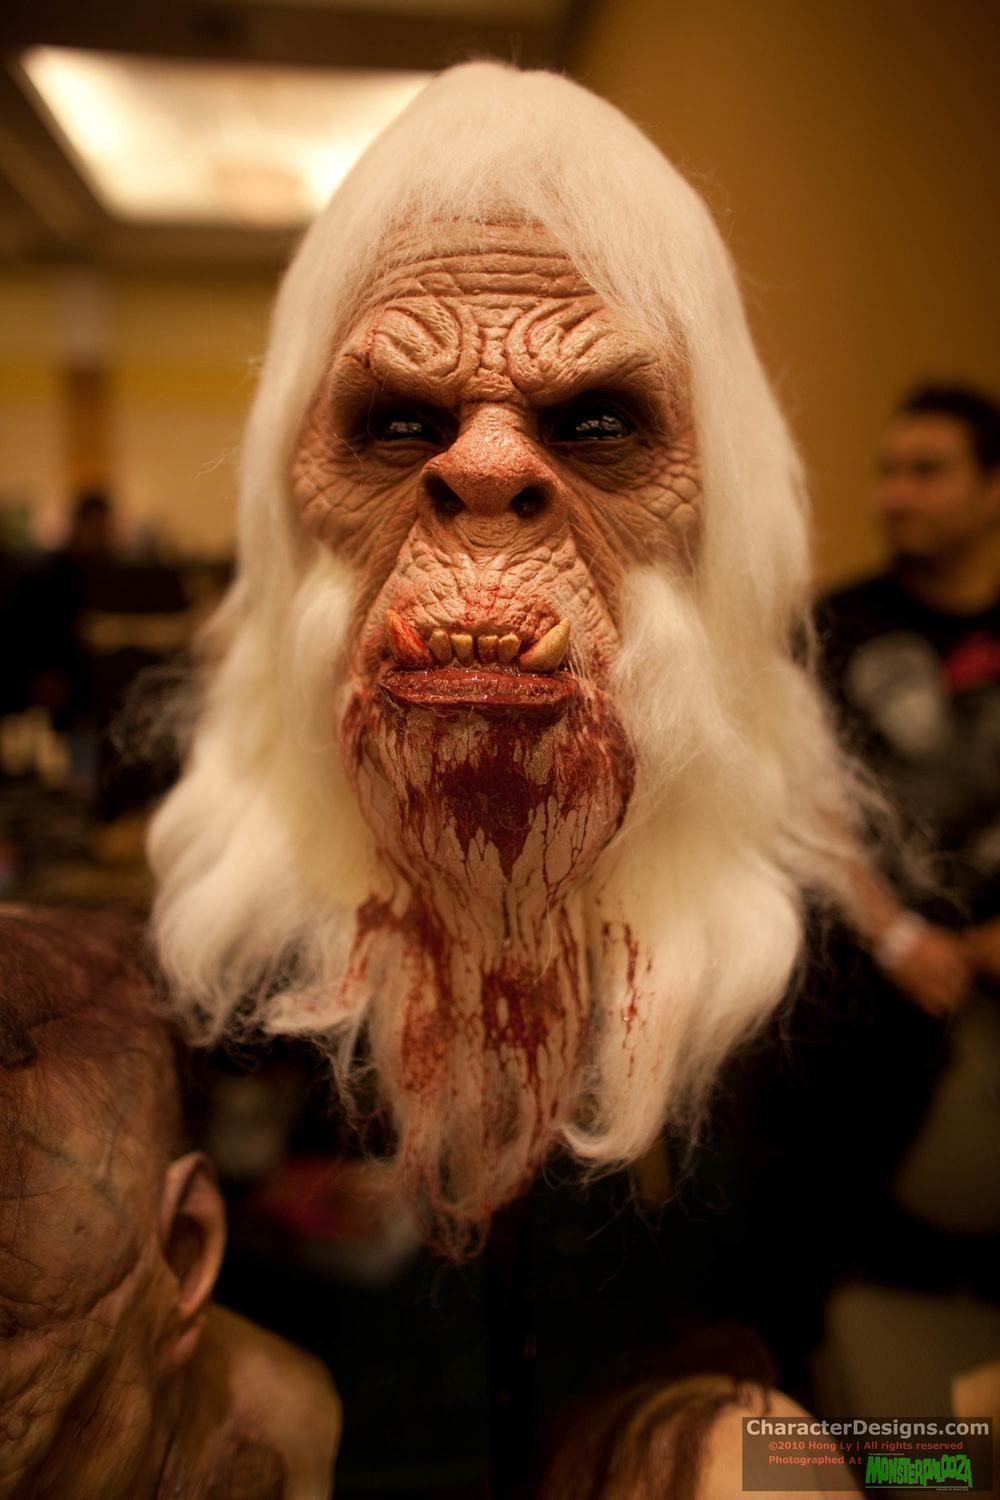 2010_Monsterpalooza_022.jpg